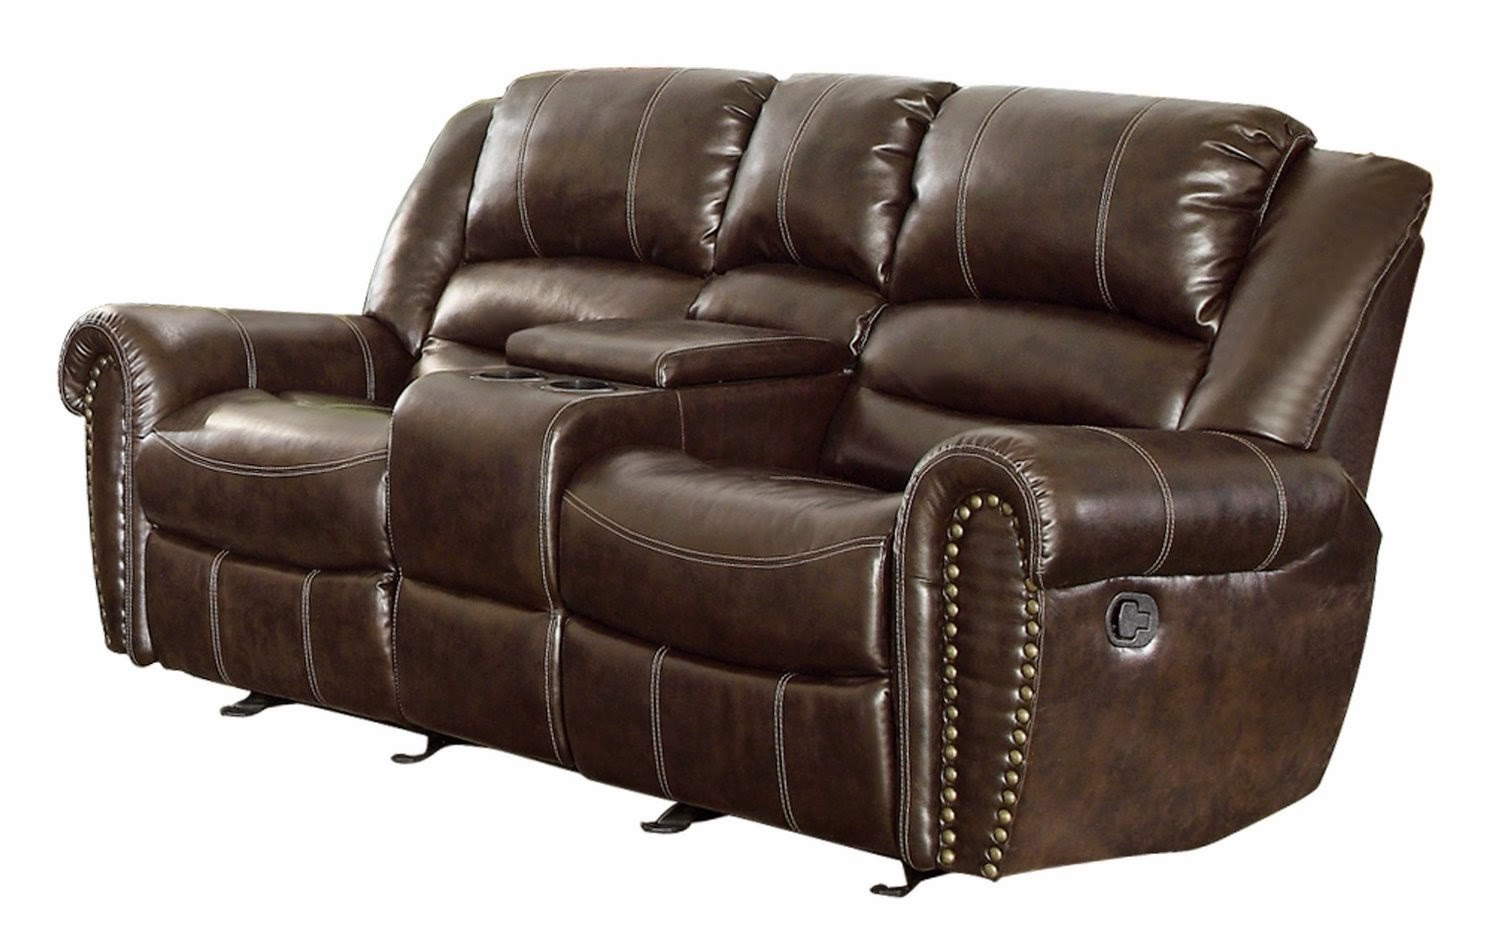 Cheap reclining sofas sale 2 seater leather recliner sofa sale Reclining loveseat sale